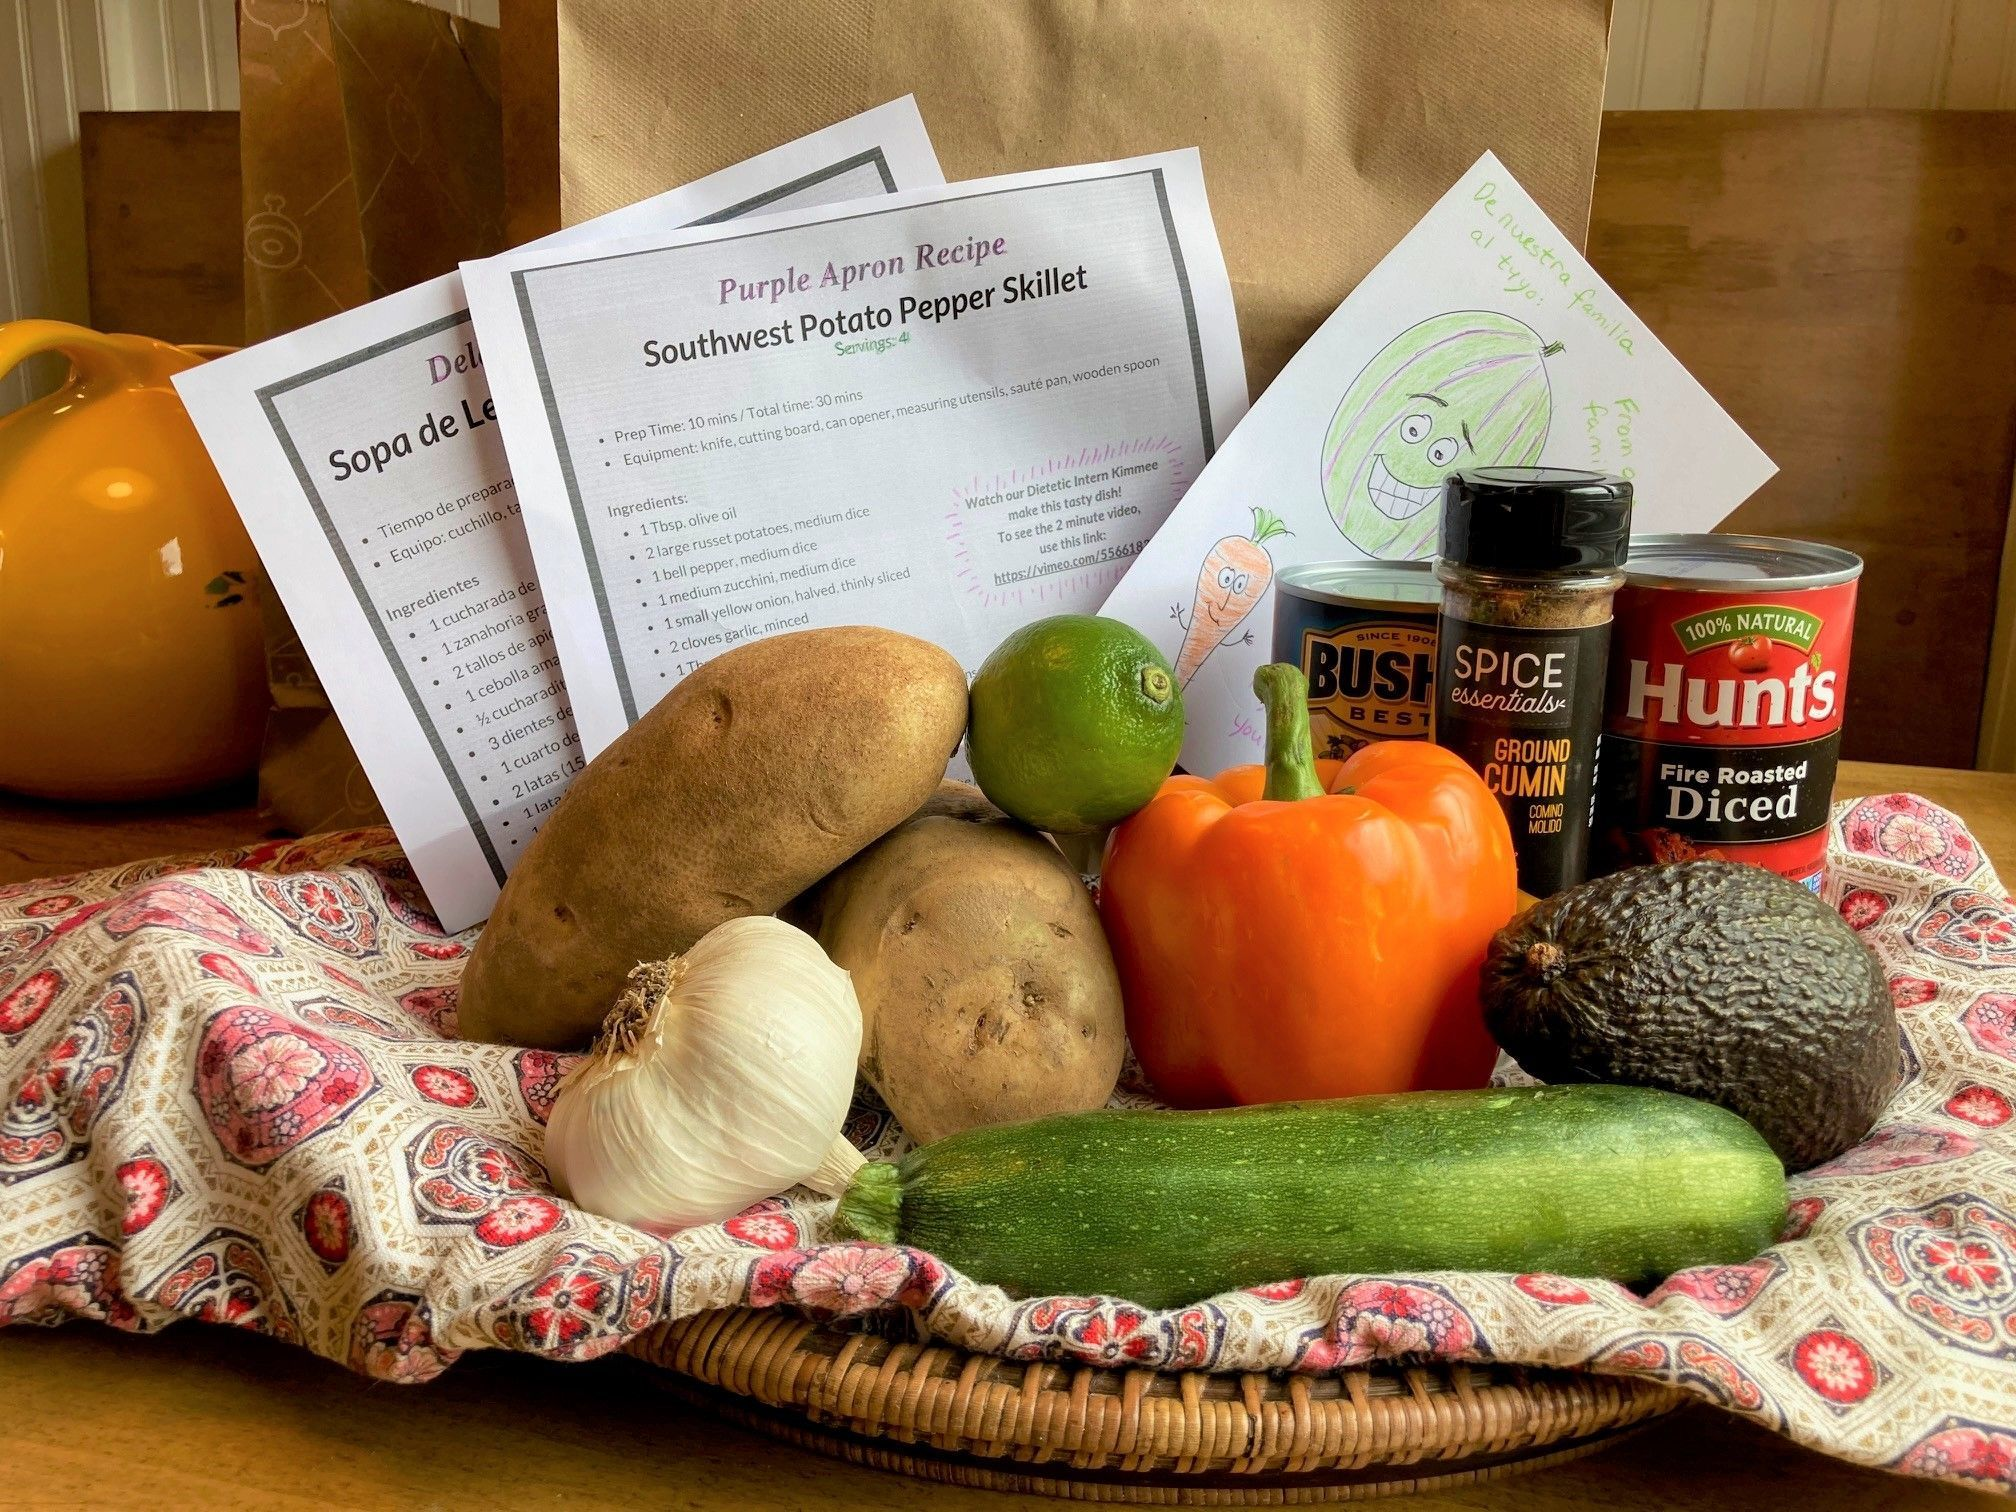 Help Our Neighbors in Need With Purple Apron Meal Kits!